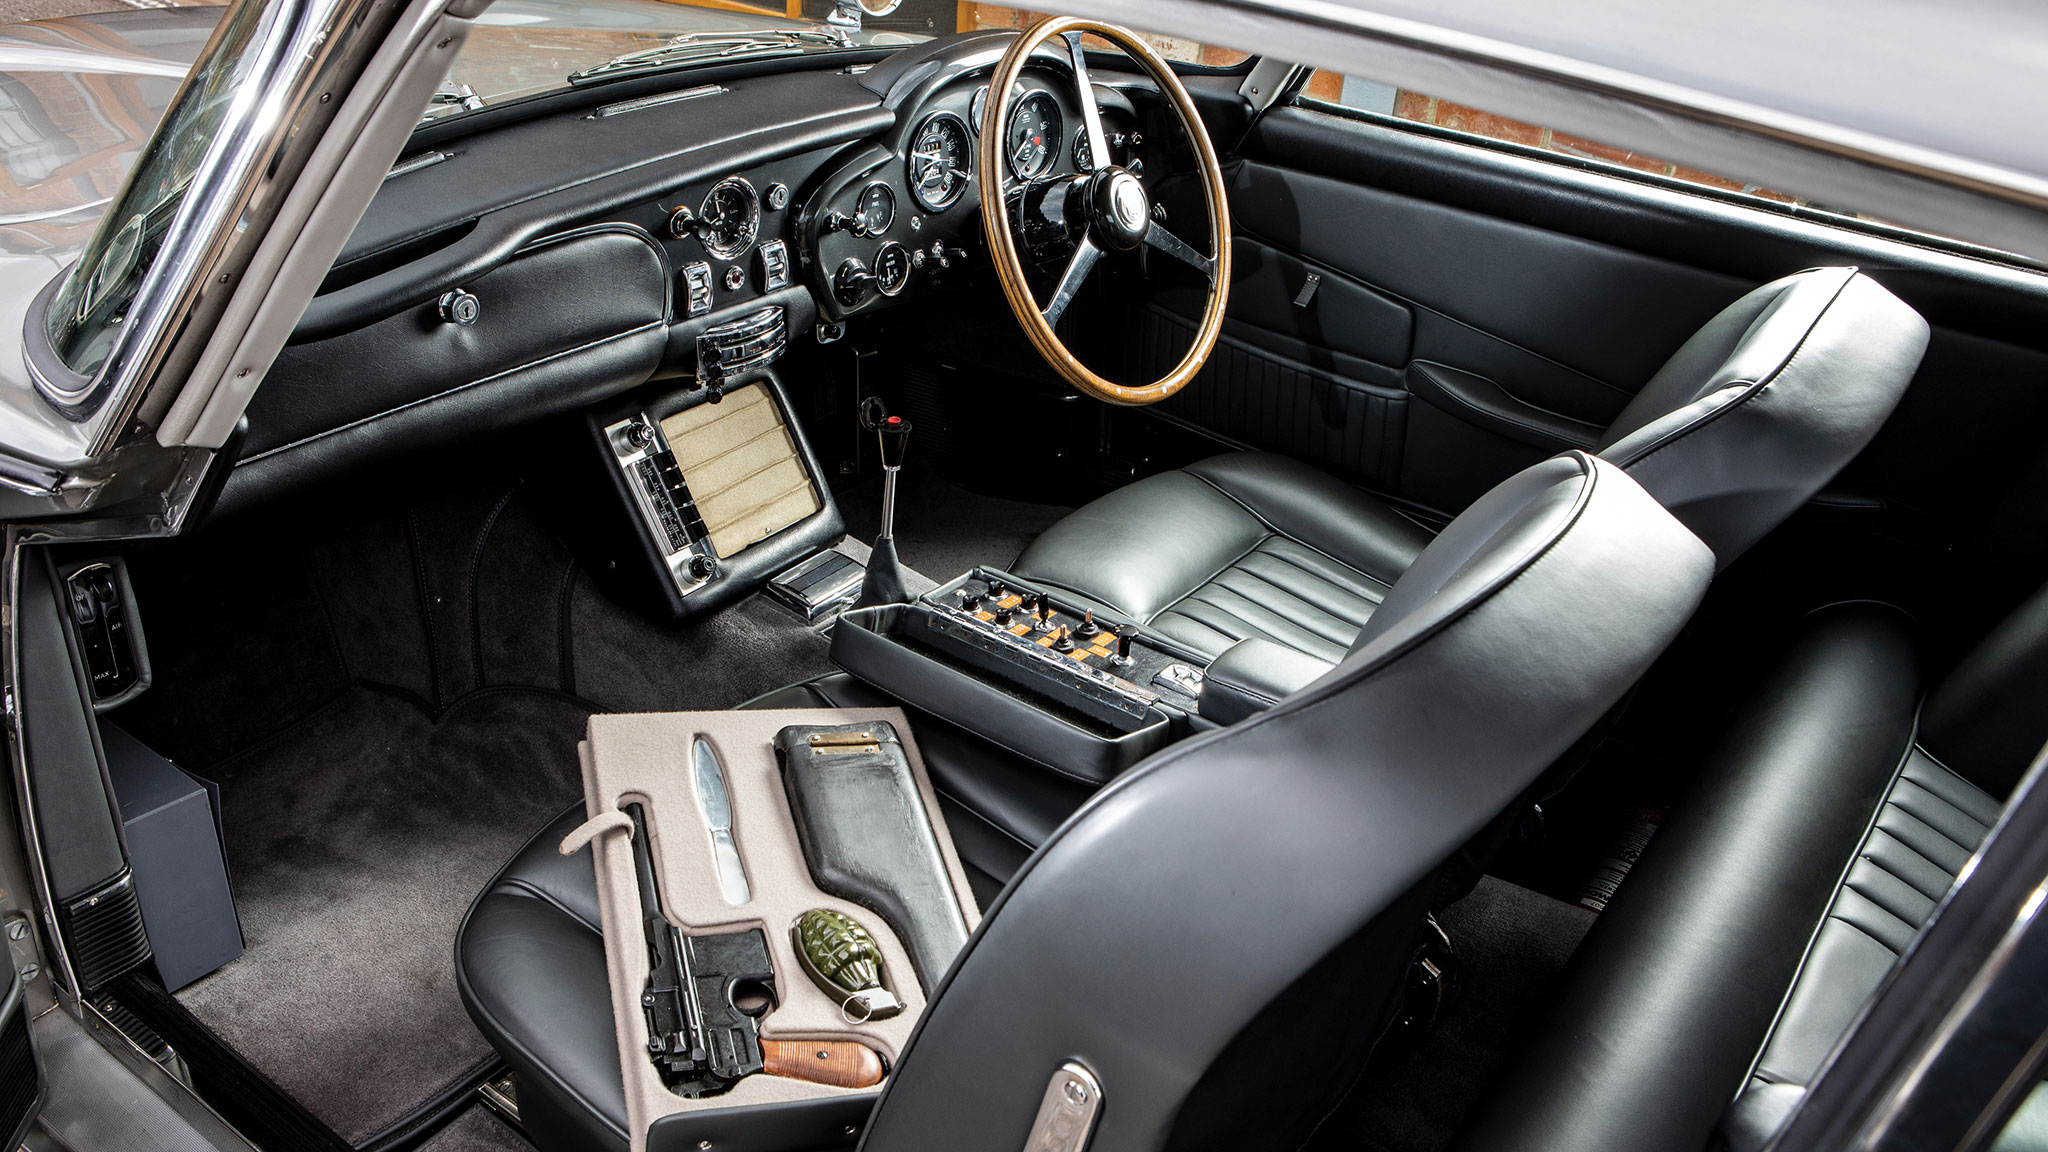 007 S 1965 Aston Martin Db5 Sells For 6 385 000